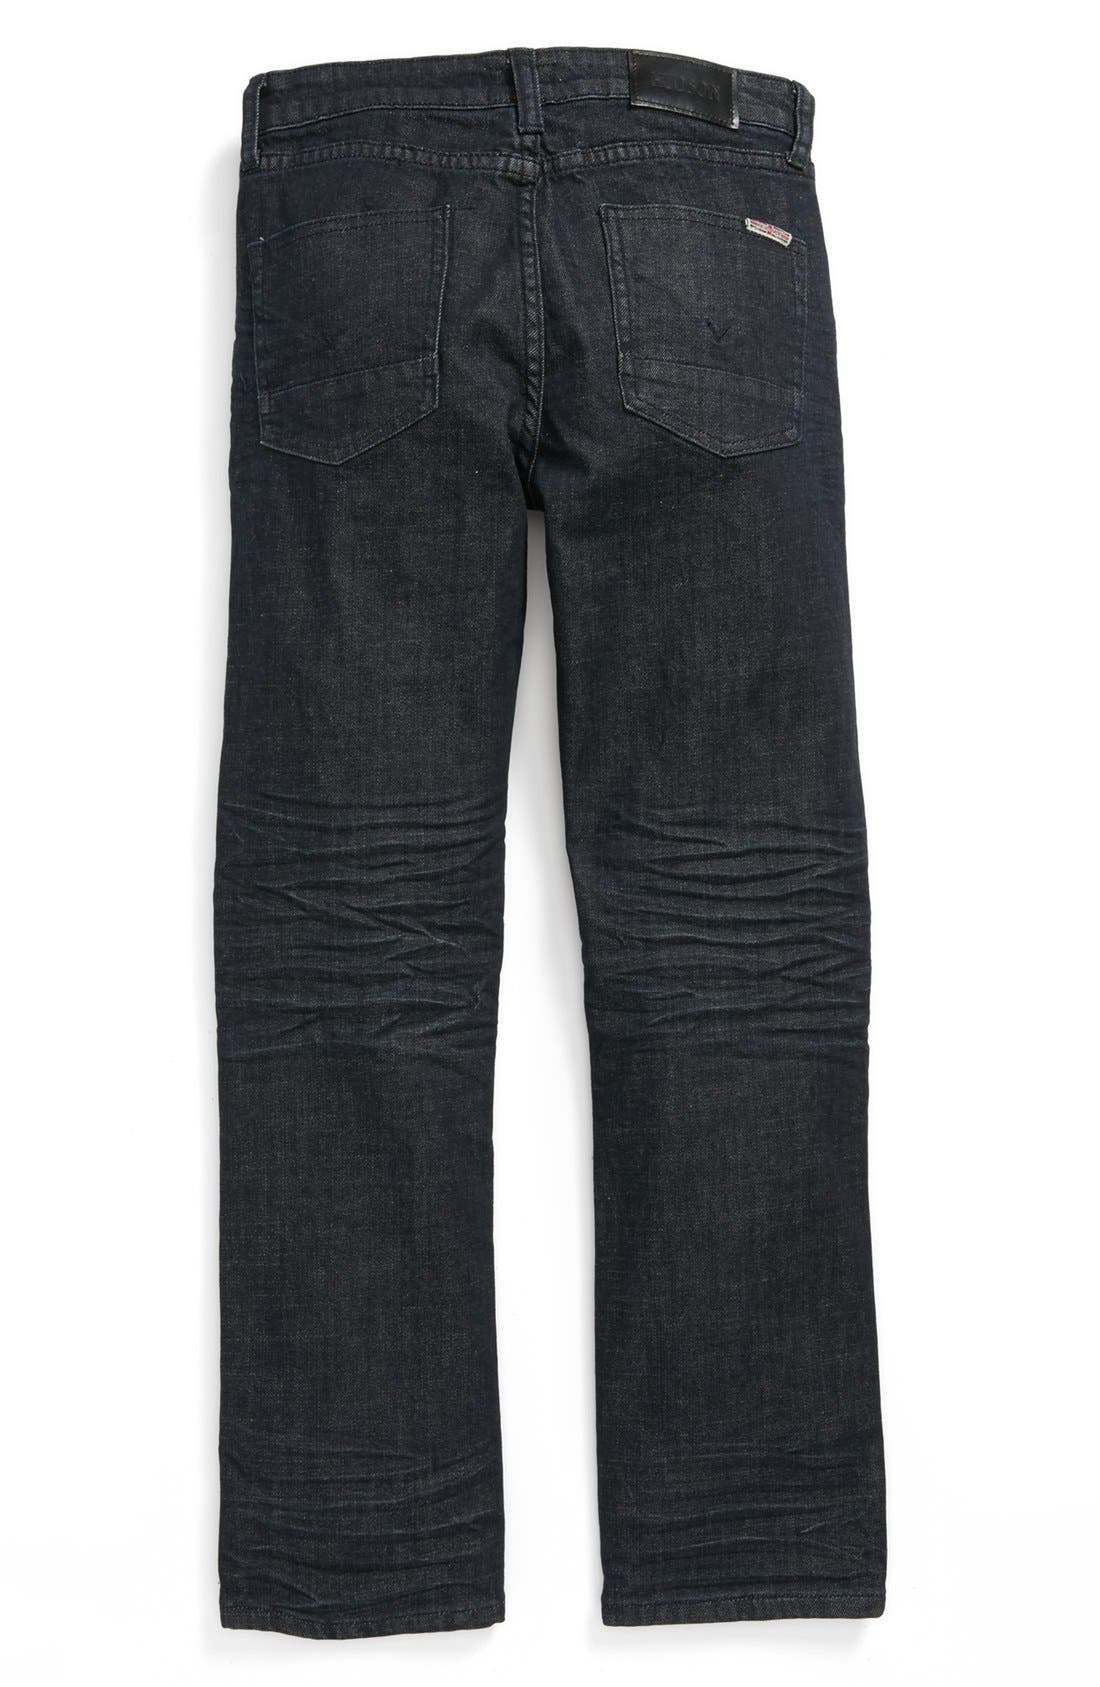 Main Image - Hudson Kids 'Parker' Straight Leg Jeans (Little Boys & Big Boys)